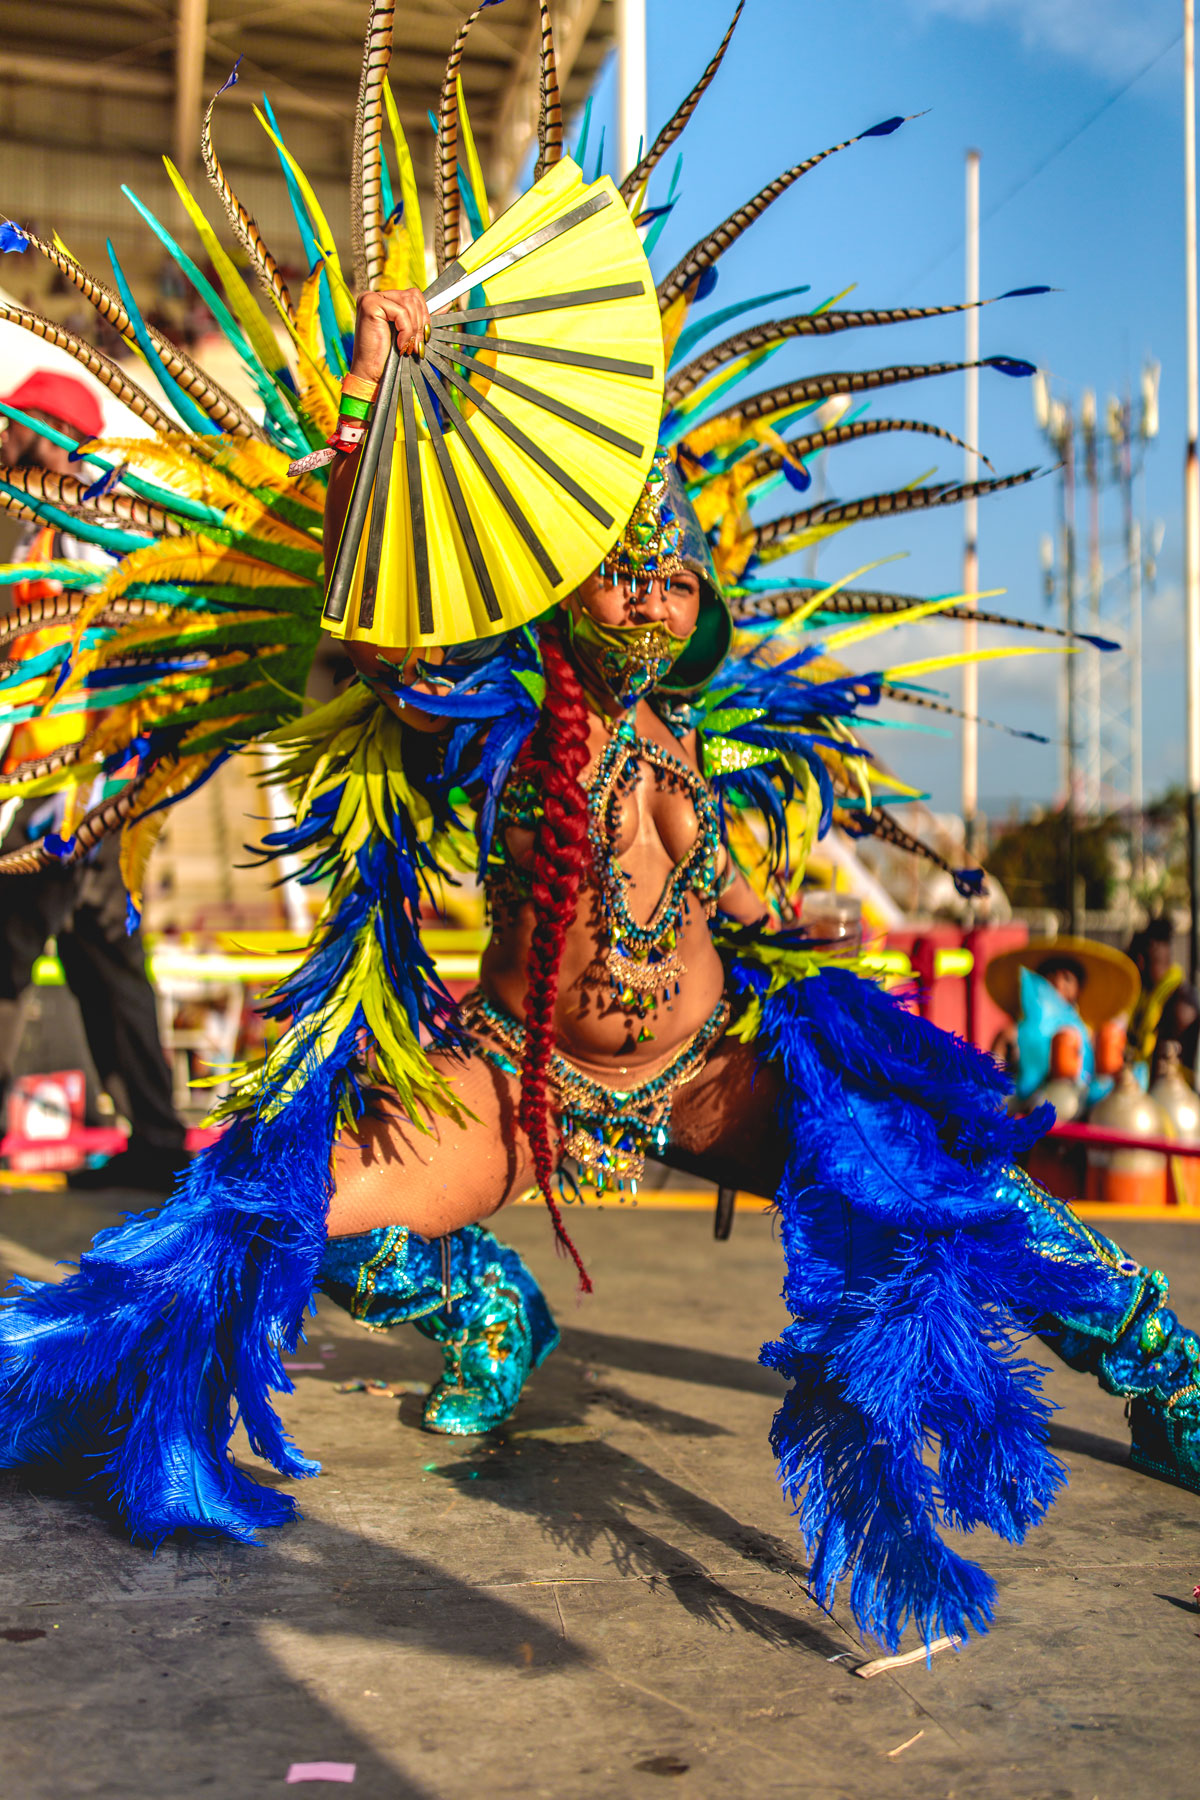 Carnival dancer in yellow and blue outfit